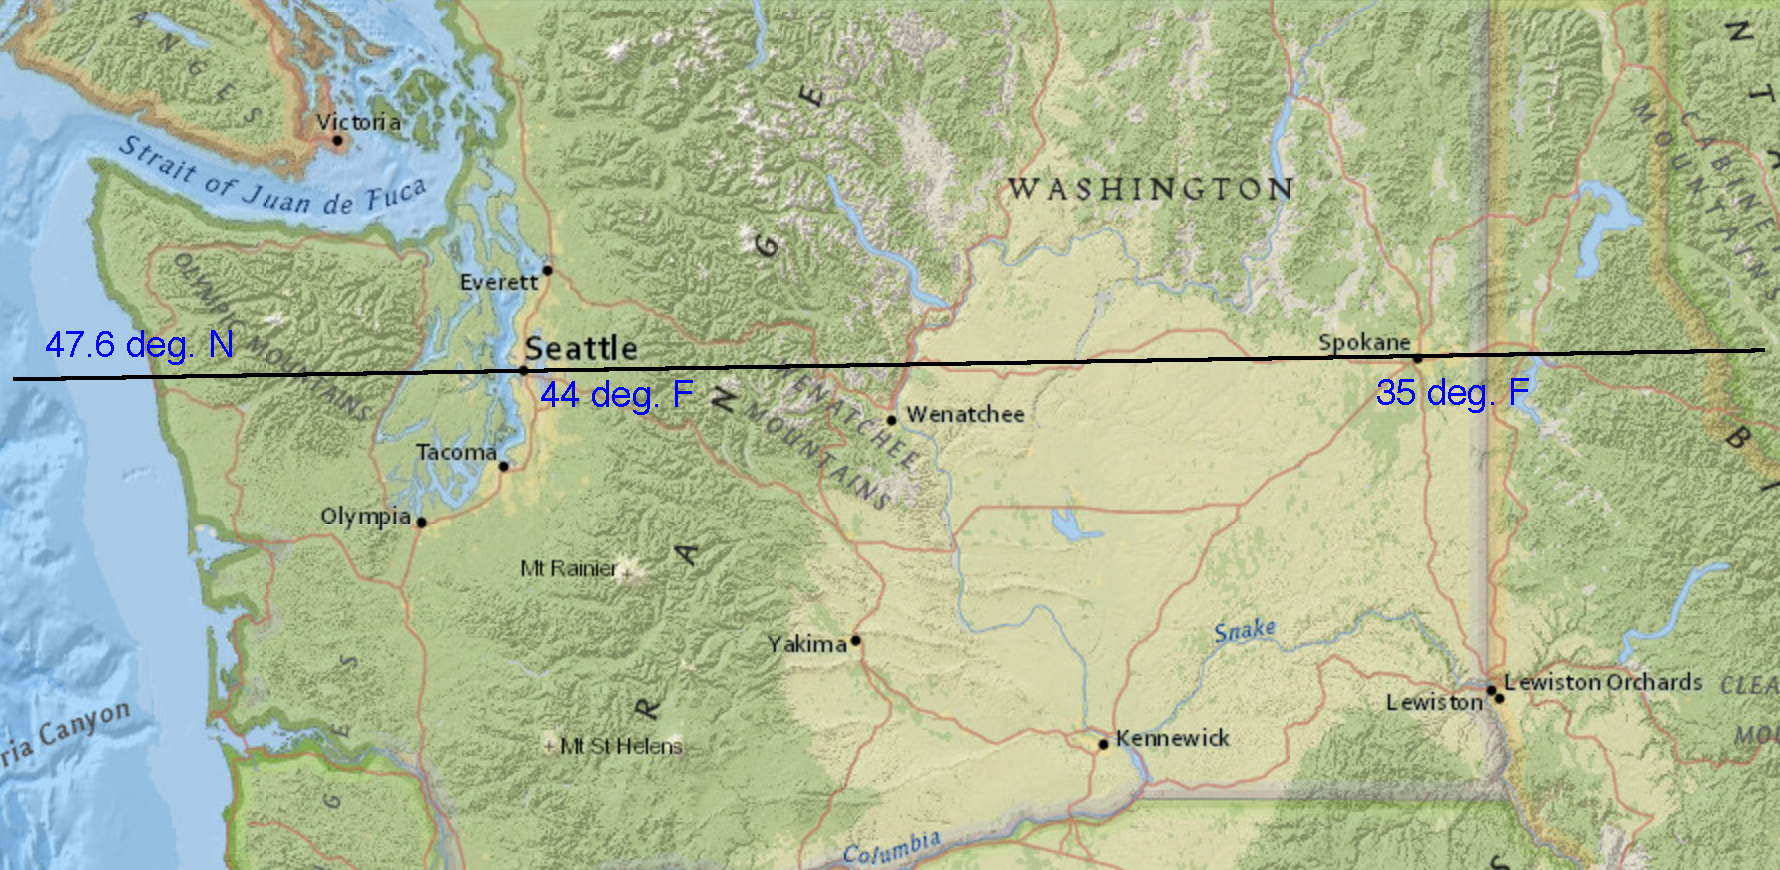 "A map of Washington state. A horizontal line, labeled ""forty seven point 6 degrees north"" passes through two points - the cities of Seattle and Spokane. Next to Seattle, the listed temperature is ""44 degrees Fahrenheit."" Next to Spokane, the listed temperature is ""35 degrees Fahrenheit."""